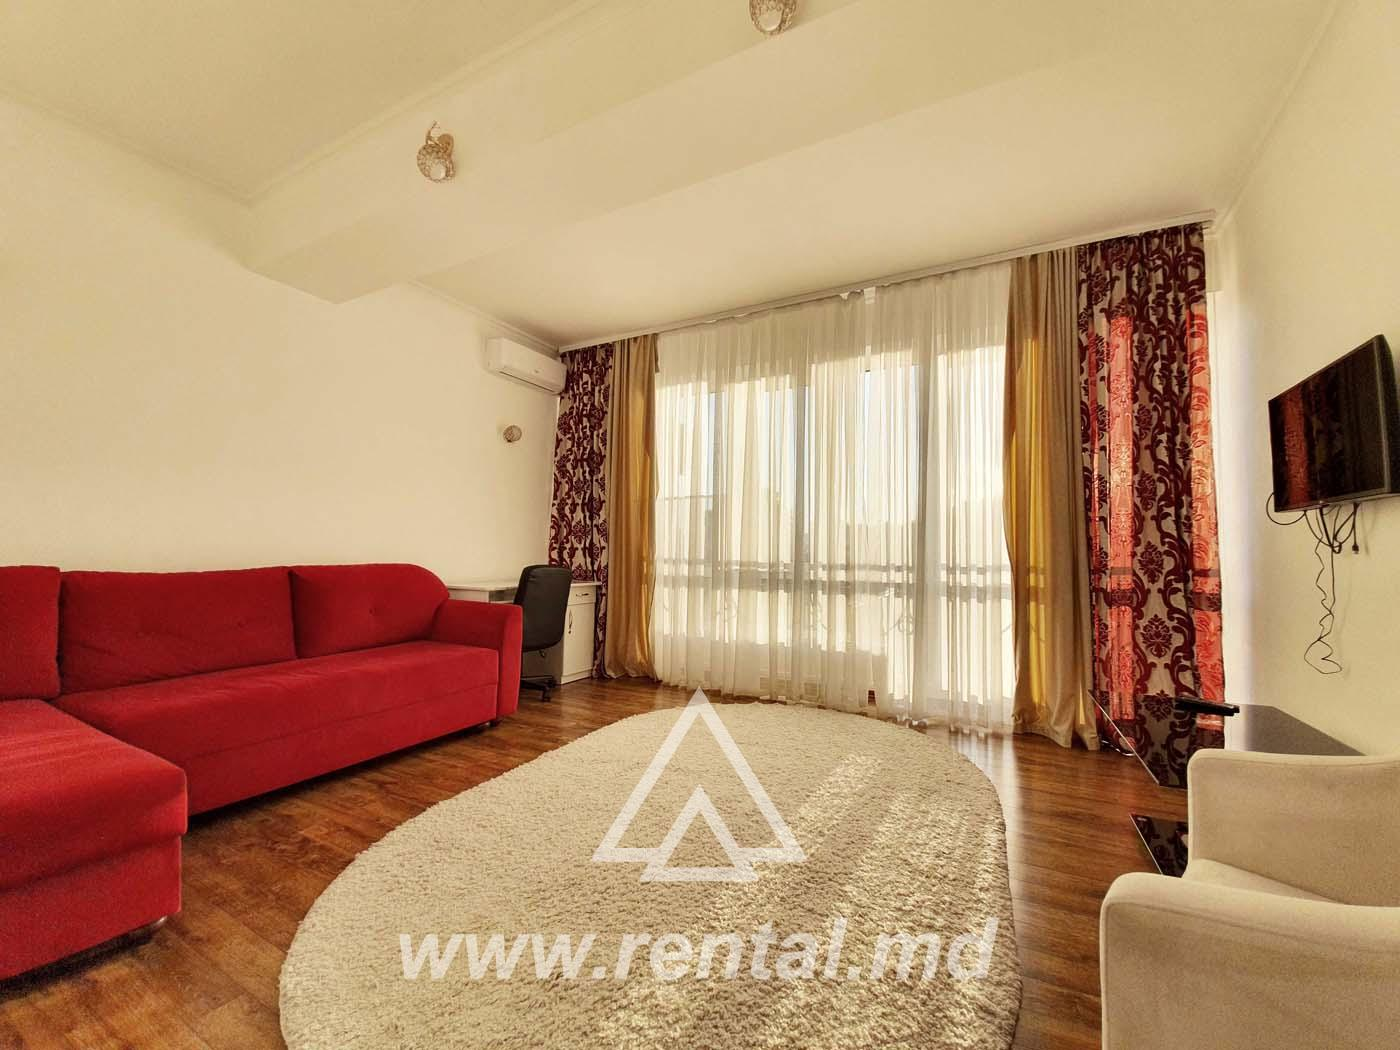 Short term apartment in Chisinau on Ismail Street